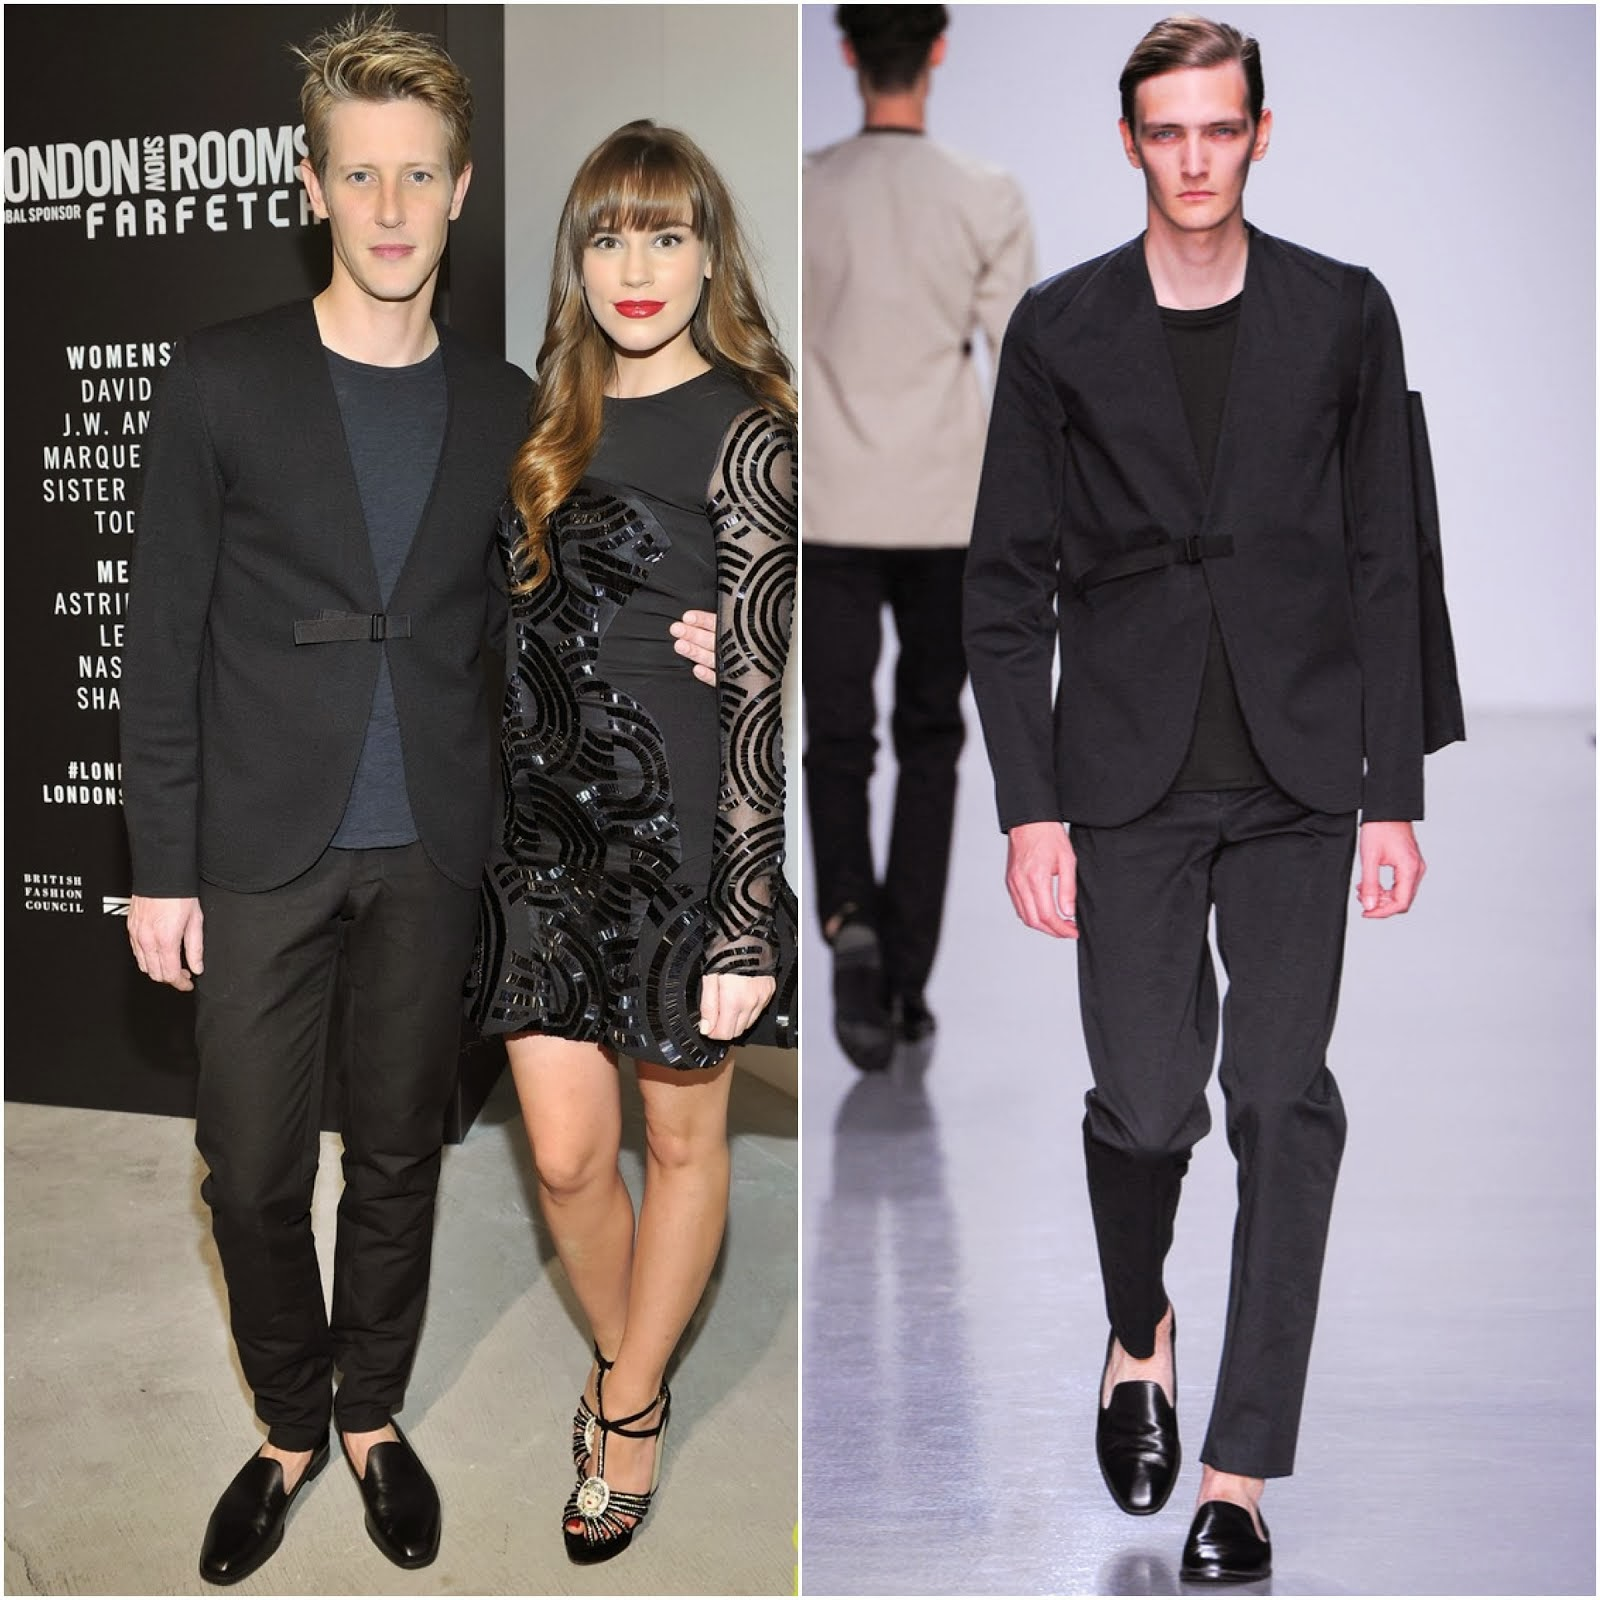 Gabriel Mann in Lee Roach Spring Summer 2014 - London Show Room LA Opening November 2013